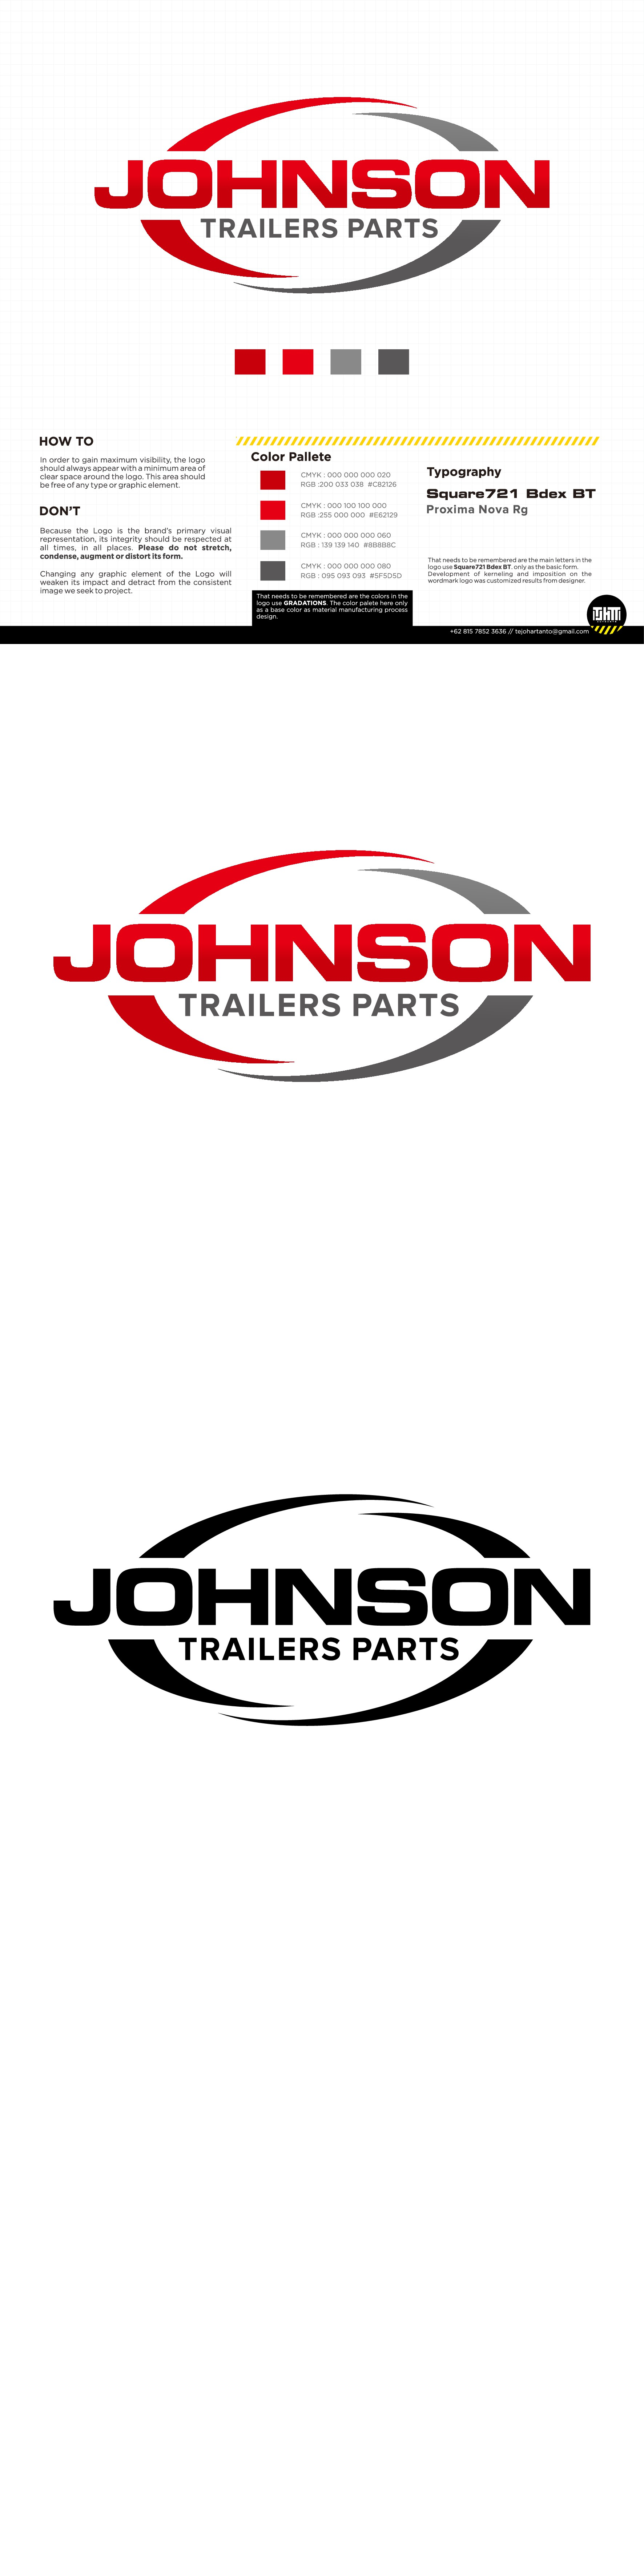 Create a logo, design or Mascot that can capture a trailer parts business